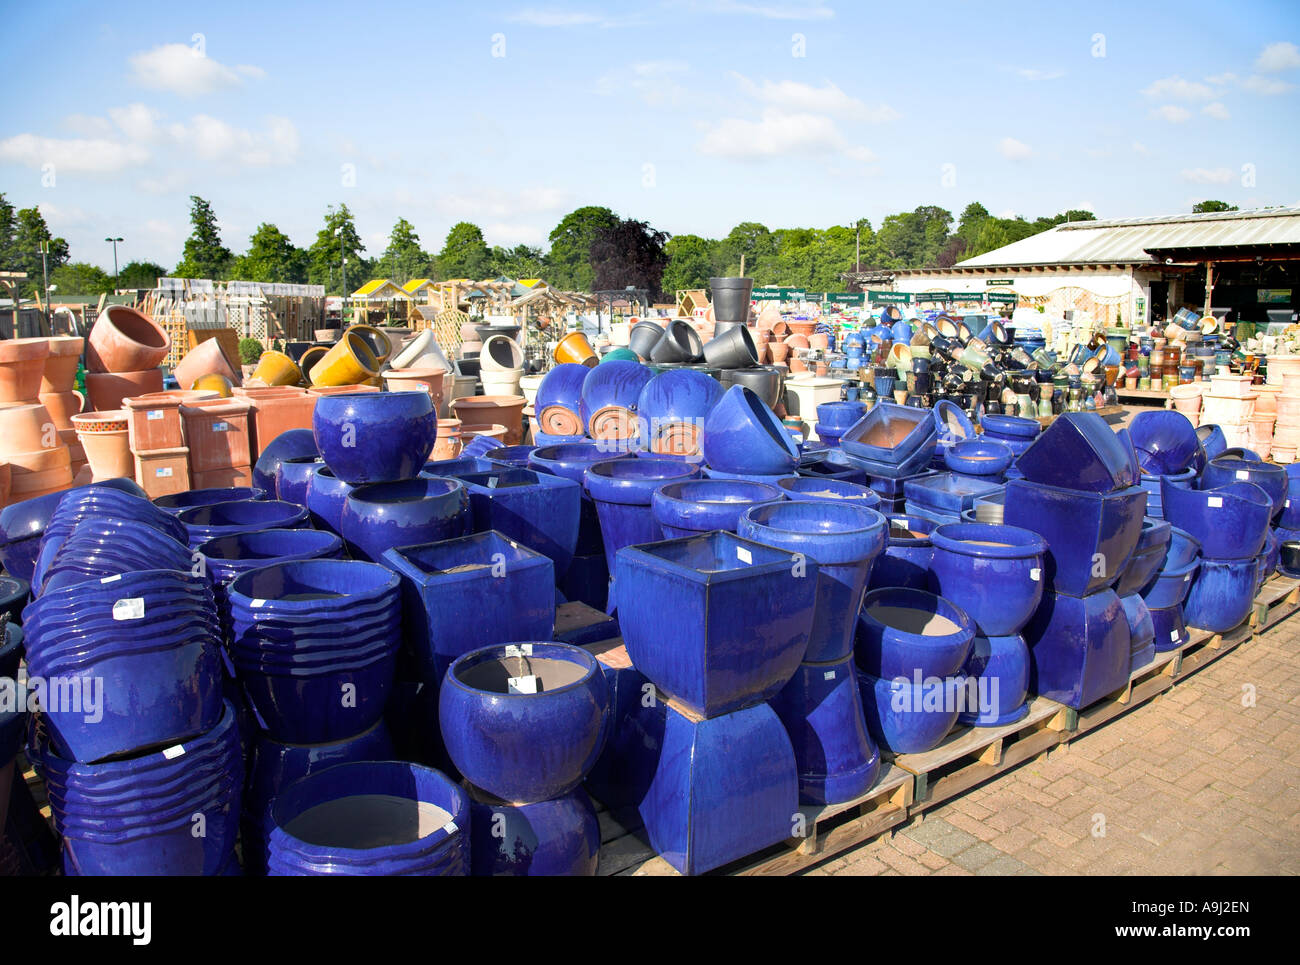 Blue Flower Pots For Sale In A Garden Centre Stock Photo